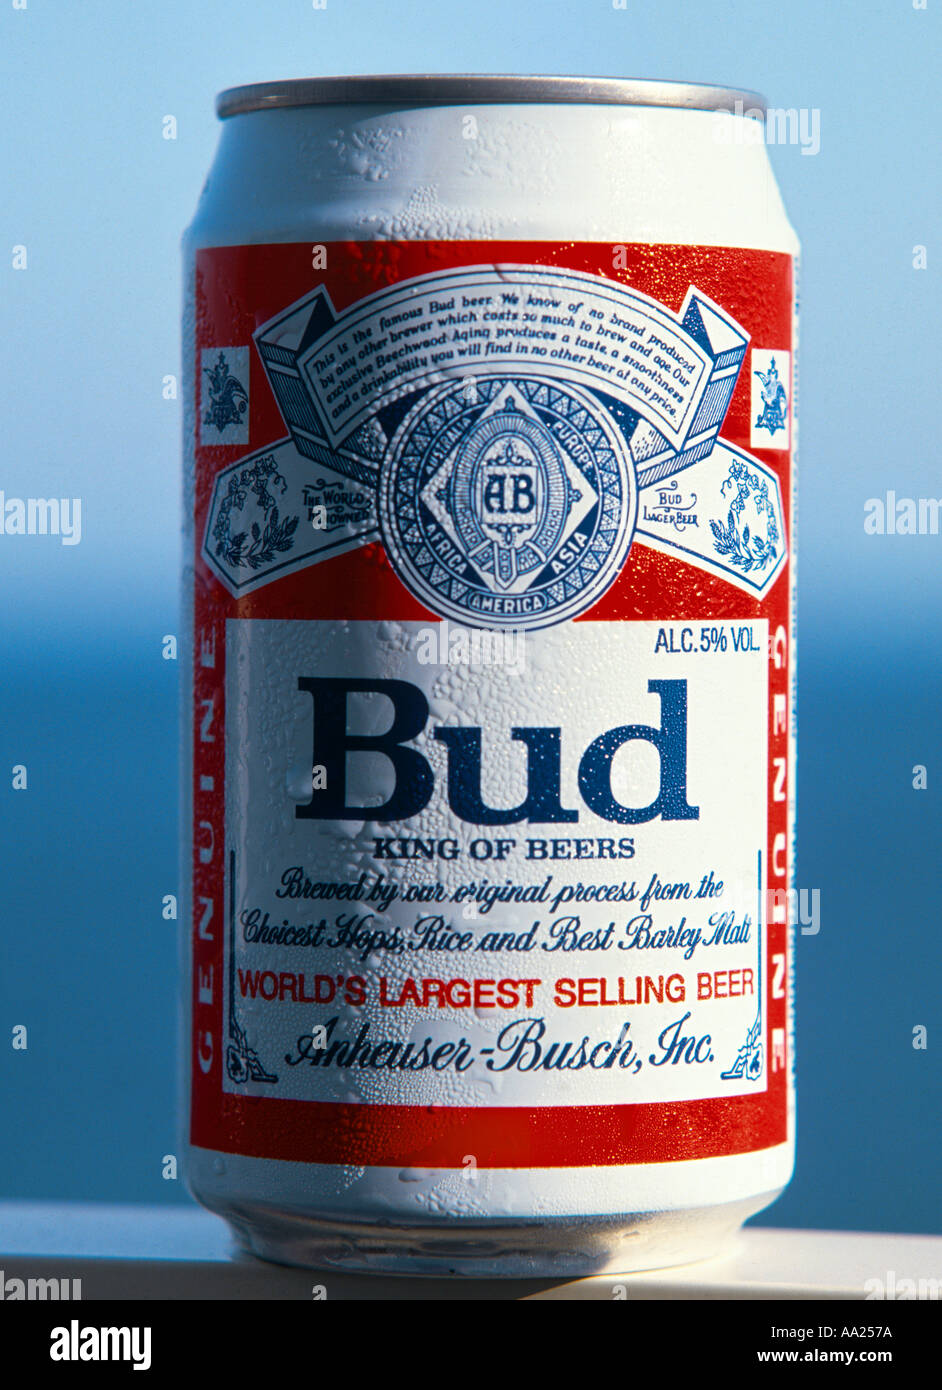 Ice cold can of budweiser beer usa stock photo royalty free image 664954 alamy - Budweiser beer pictures ...